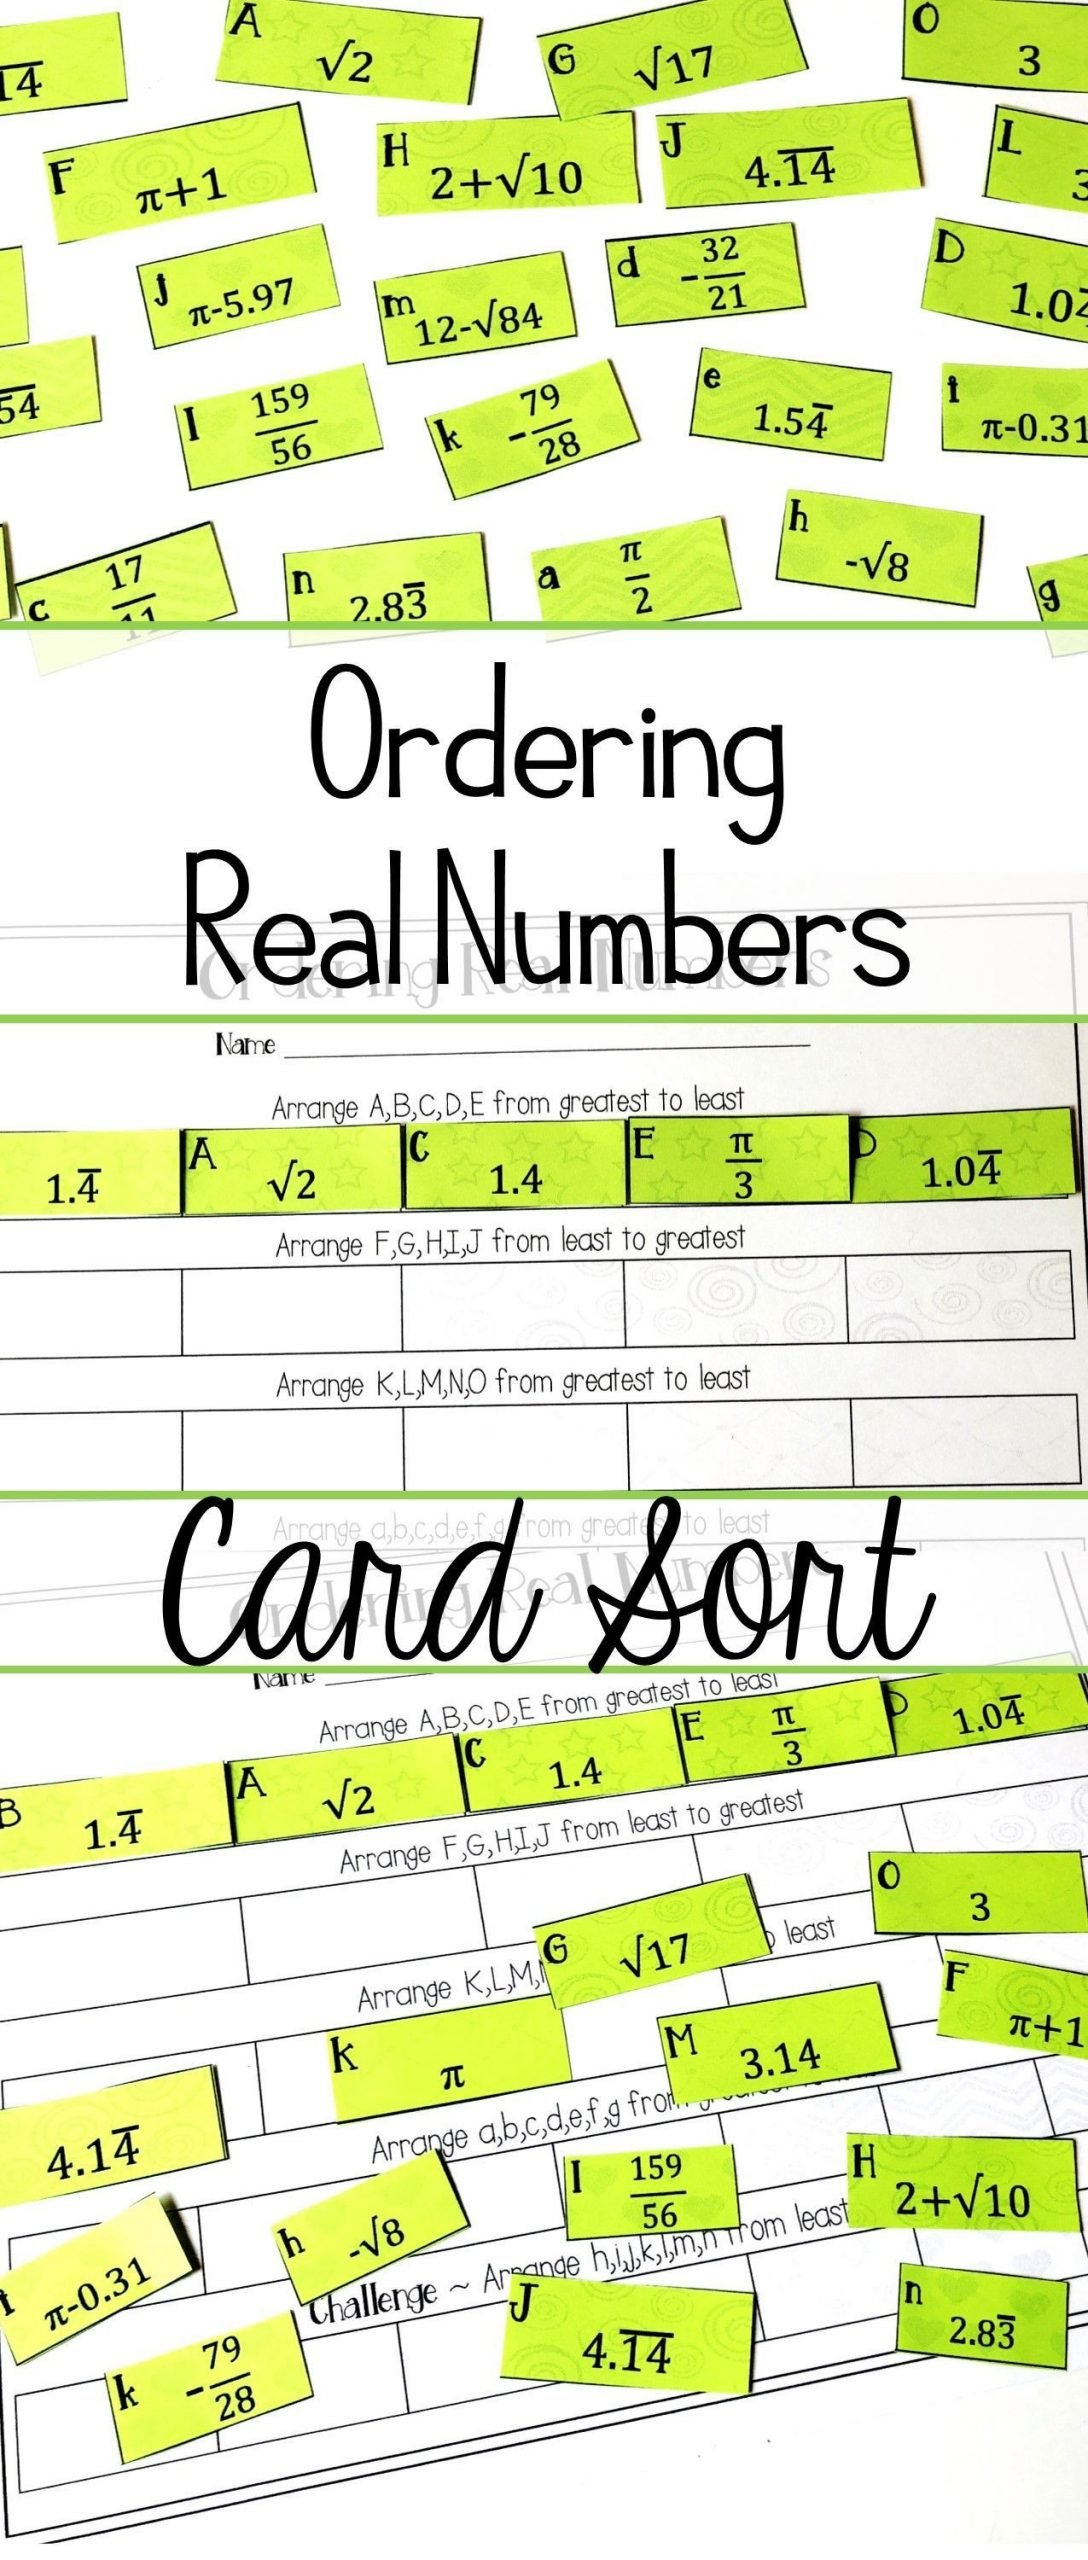 Real Numbers Worksheet 8th Grade ordering Real Numbers Activity Rational and Irrational